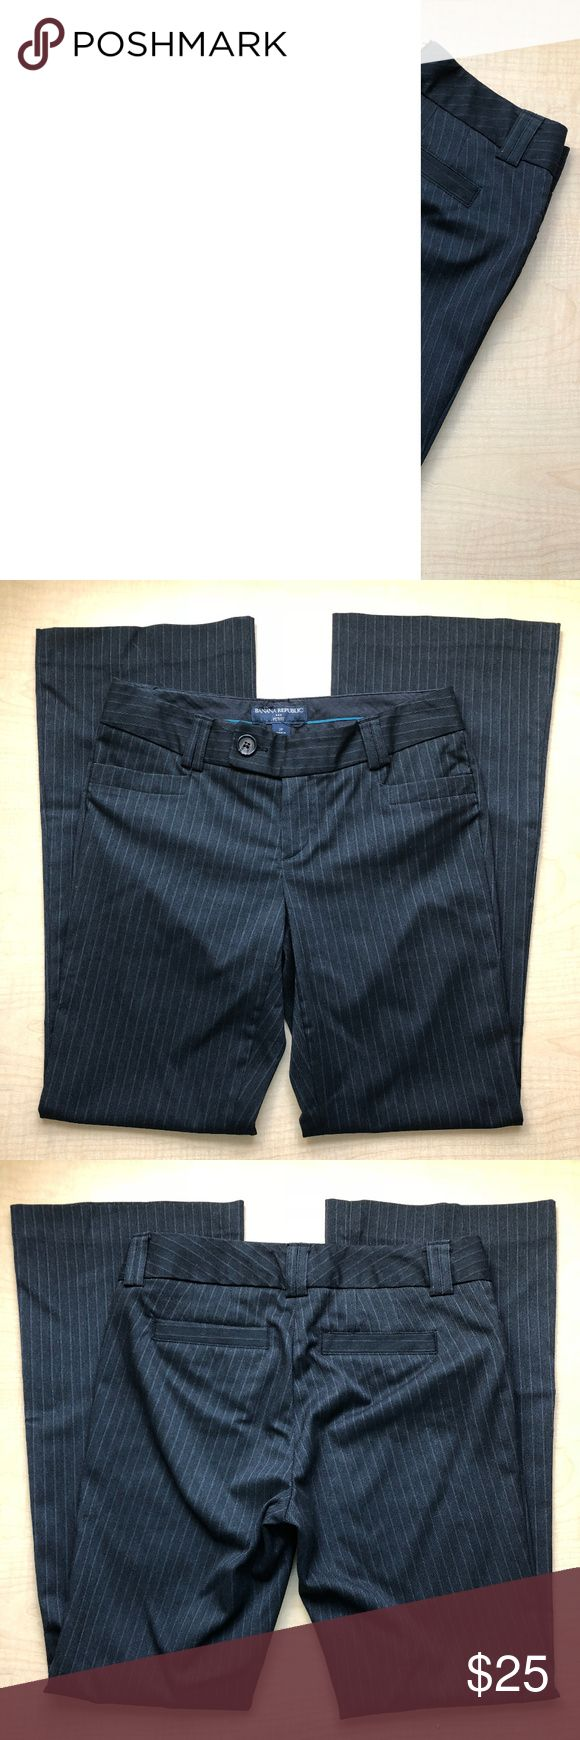 """Banana Republic Black Stripe Dress Pants Banana Republic Black Stripe Dress Pants Materials: Polyester/Viscose/Elastane (But these do not stretch much) Measurements while laying flat: Inseam: 30"""" Waist: 15"""" Let me know if you have any questions, I'll reply within 24 hours. Banana Republic Pants Boot Cut & Flare"""